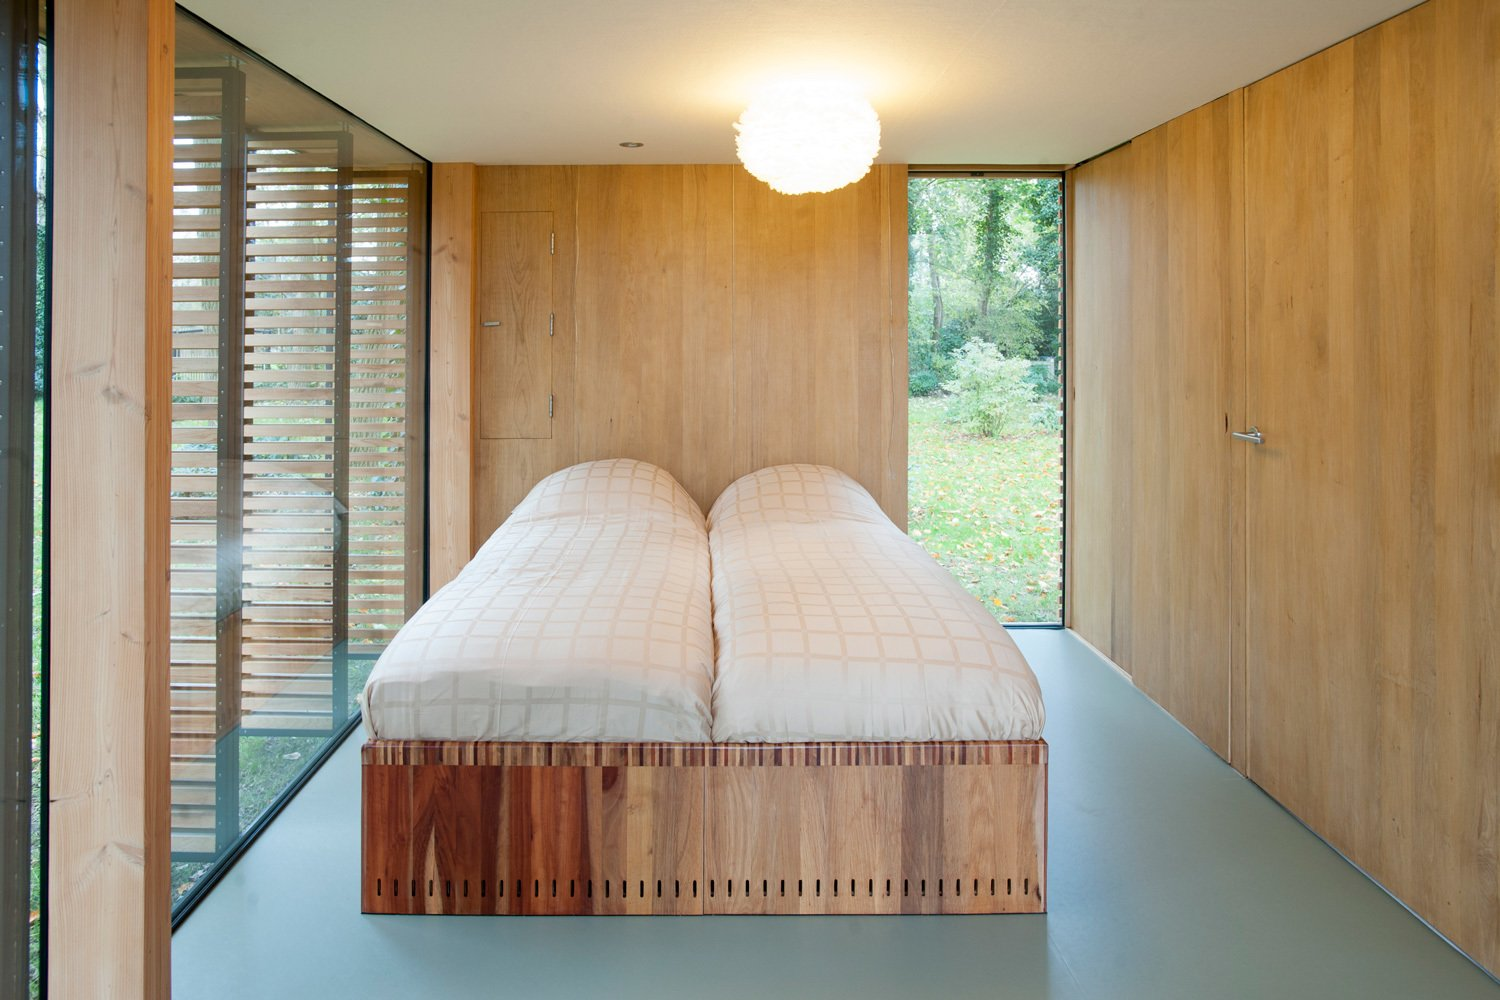 Bedroom, Bed, and Ceiling Lighting Light breaks through the bedroom's north wall through a vertical window that cuts from the floor up past the second floor mezzanine to the roof's ridgeline. The bed is custom.  Photo 5 of 9 in This Light-Filled Cabin in the Netherlands Is Completely Made by Hand from Utrecht Cabin